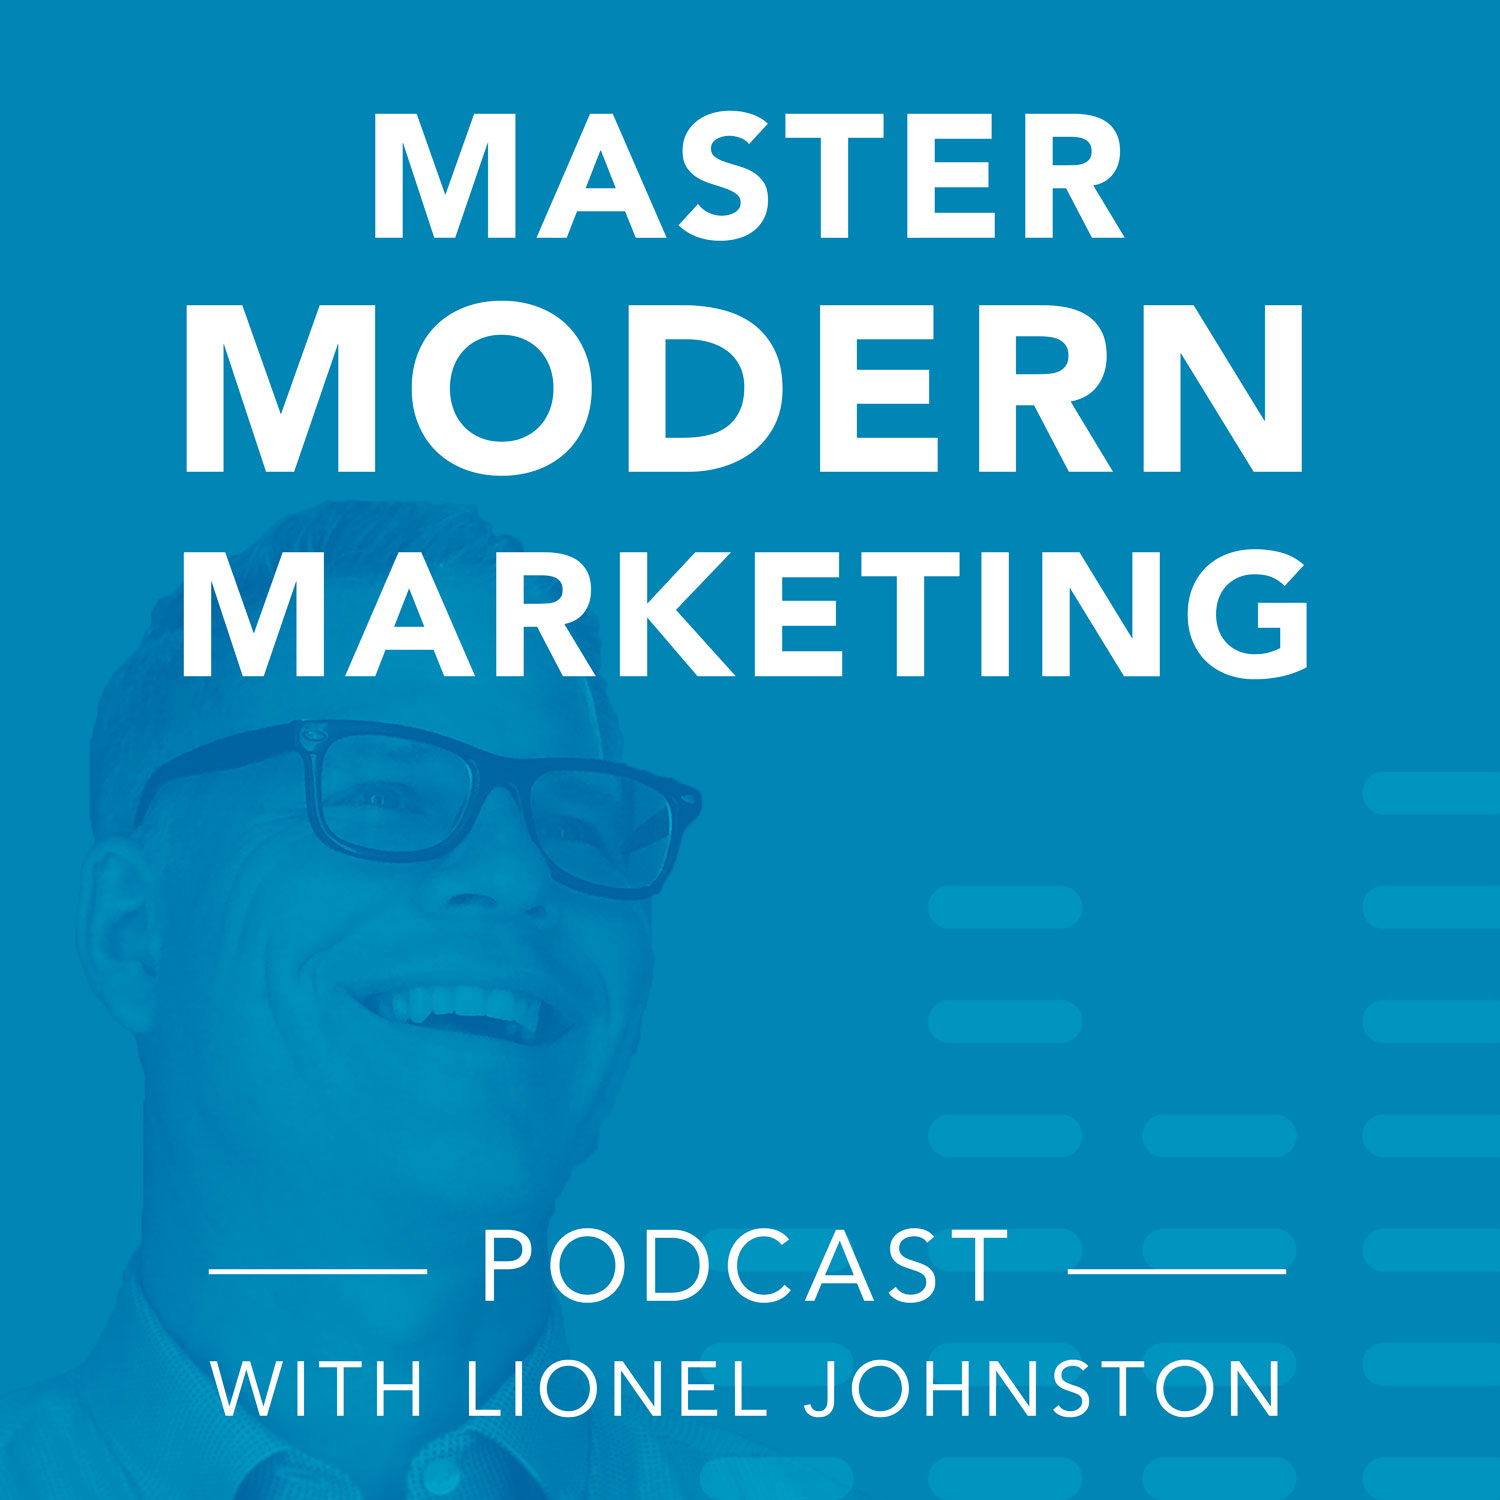 Master Modern Marketing: Farmers Marketing talks small business marketing on CJOB Radio show art